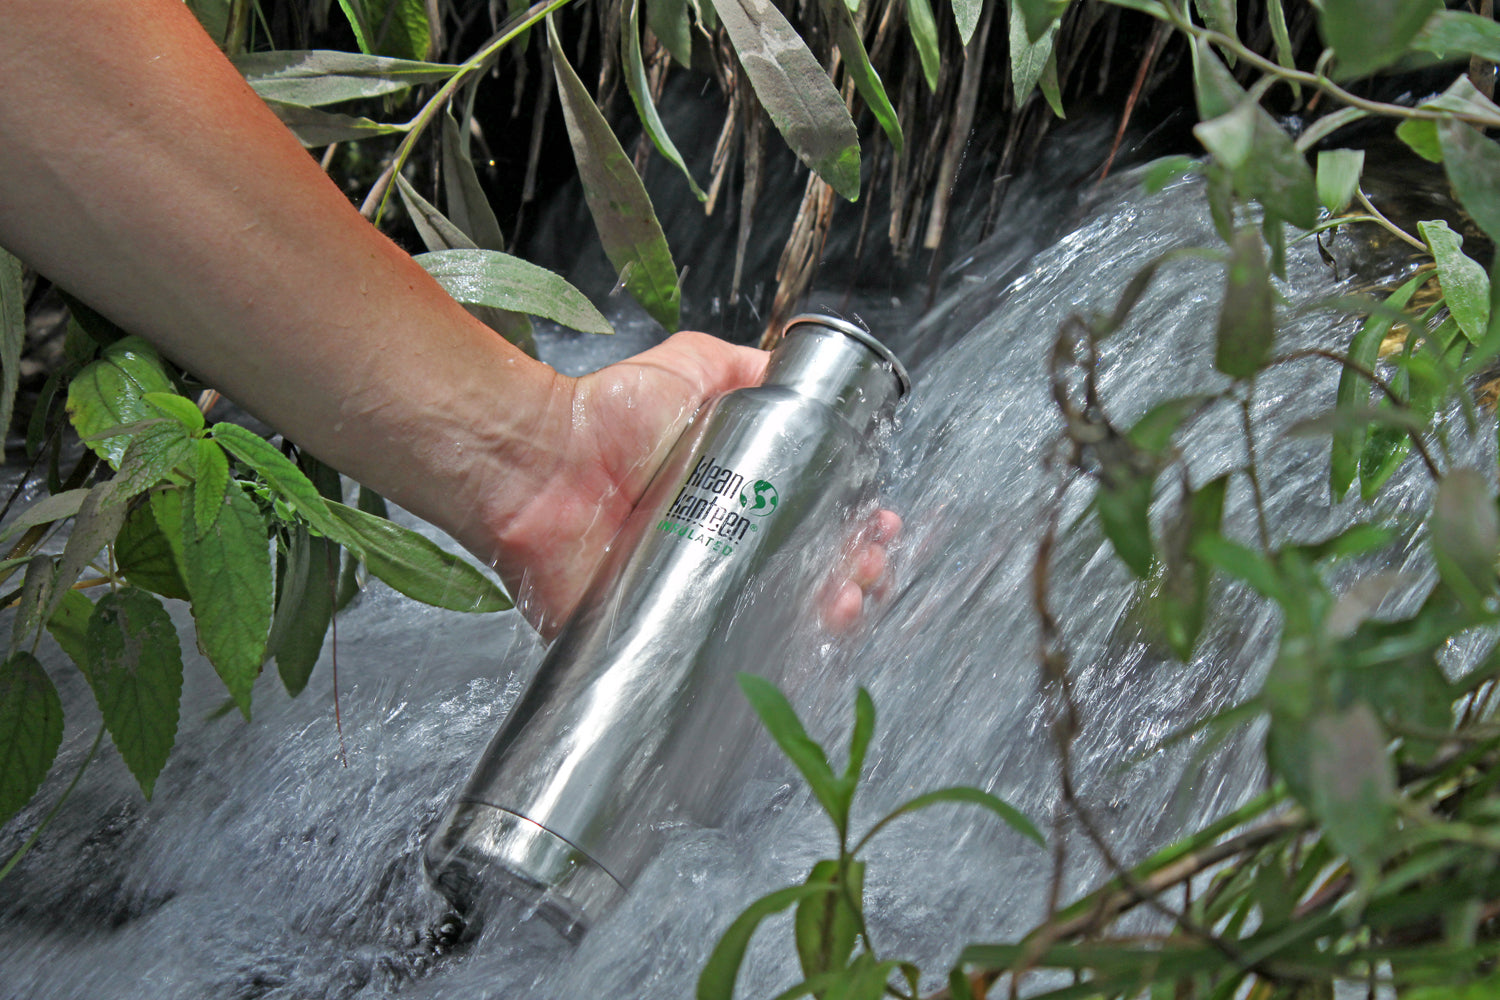 Klean Kanteen Insulated Classic 20 oz. Devils River Spring